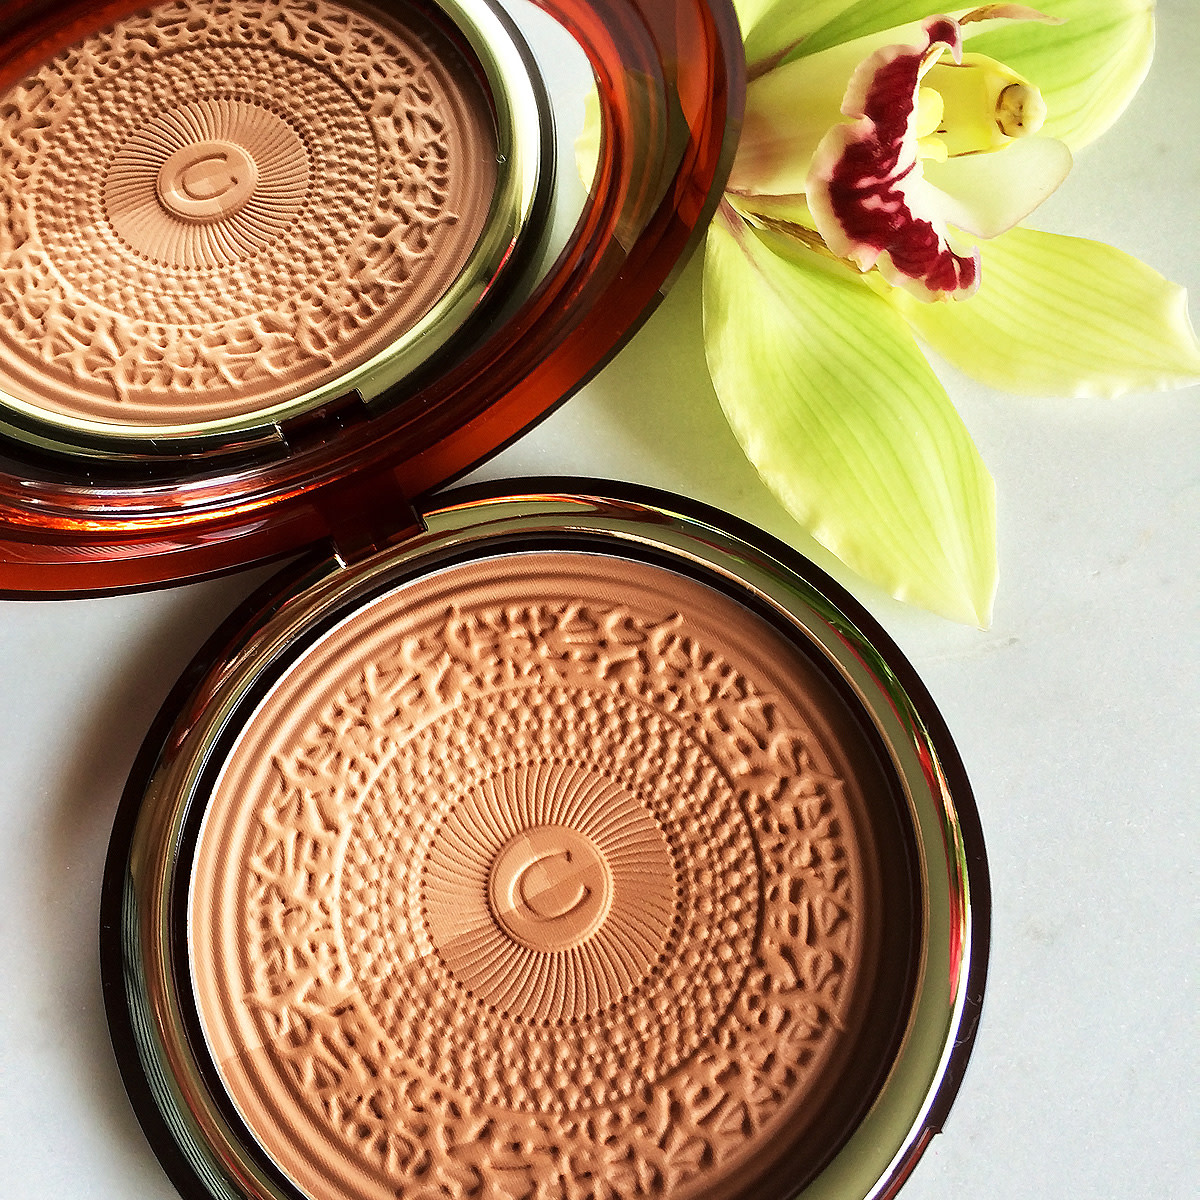 Clarins Summer 2015 Aquatic Treasures bronzer